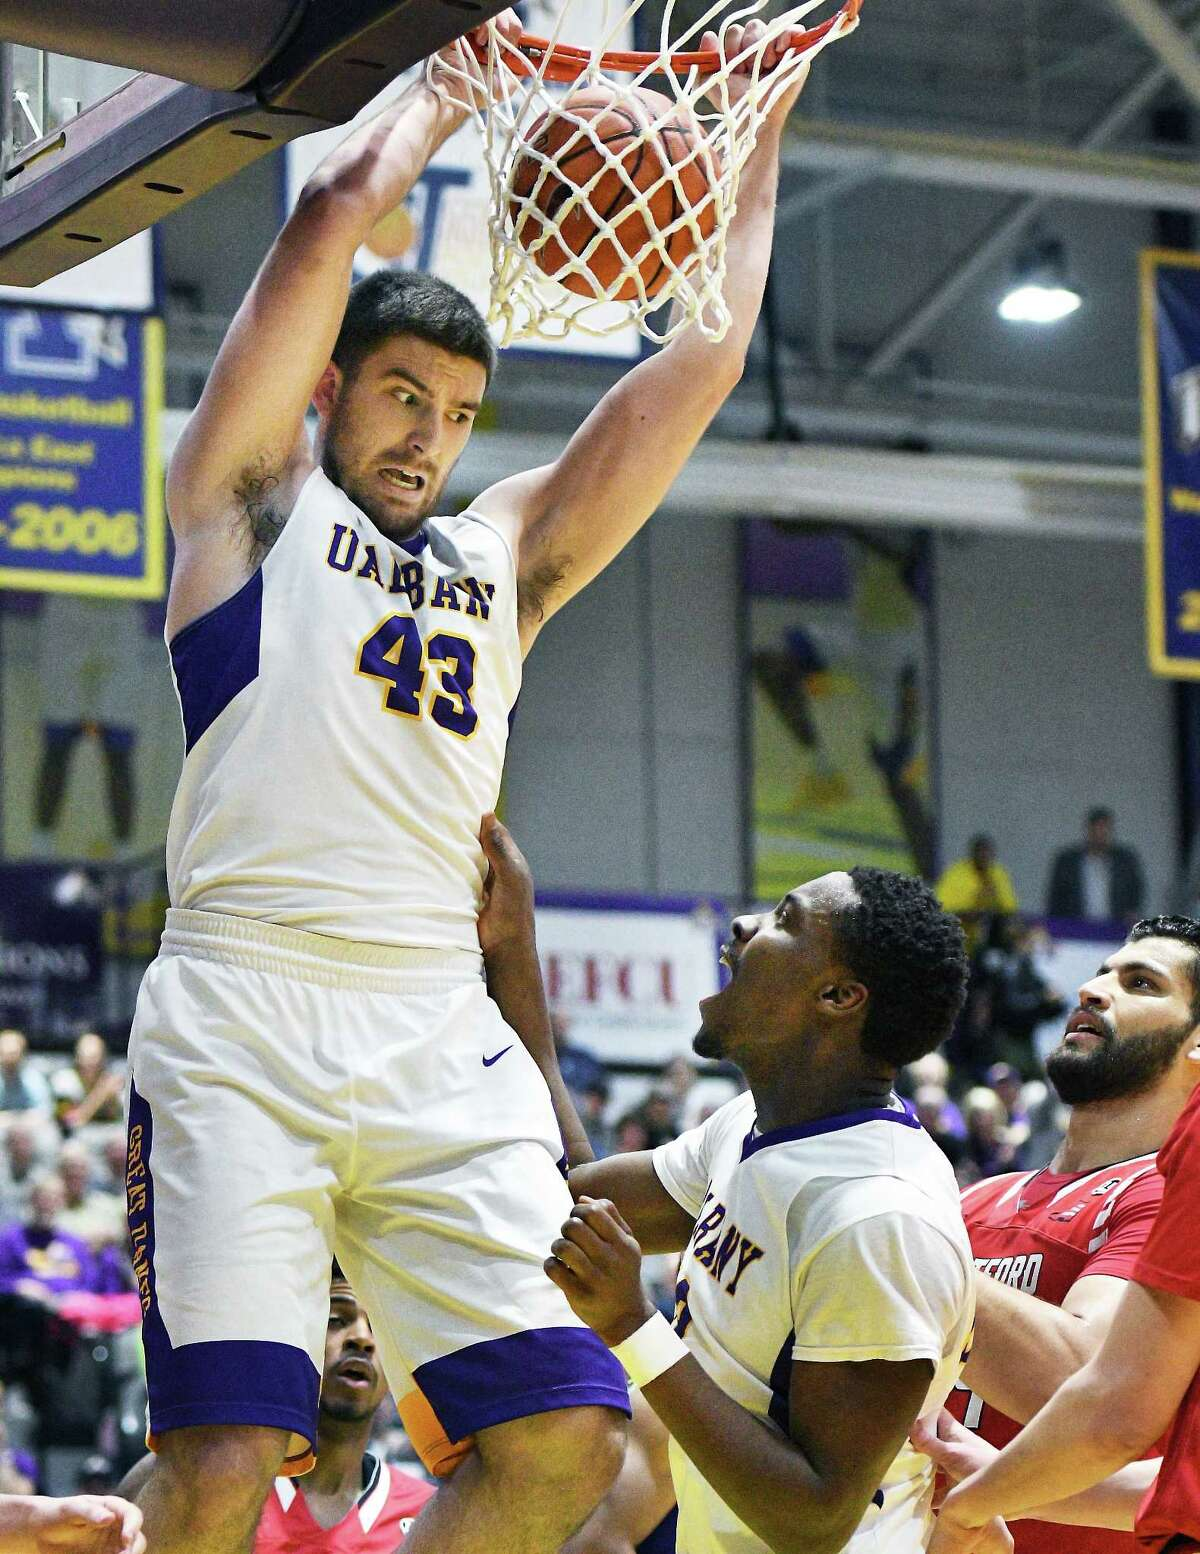 UAlbany's #43 Greig Stire, left, gets congratulated on his dunk by team mate #12 Devonte Campbell during their first round game of the America East Conference Tournament against Hartford Wednesday March 1, 2017 in Albany, NY. (John Carl D'Annibale / Times Union)